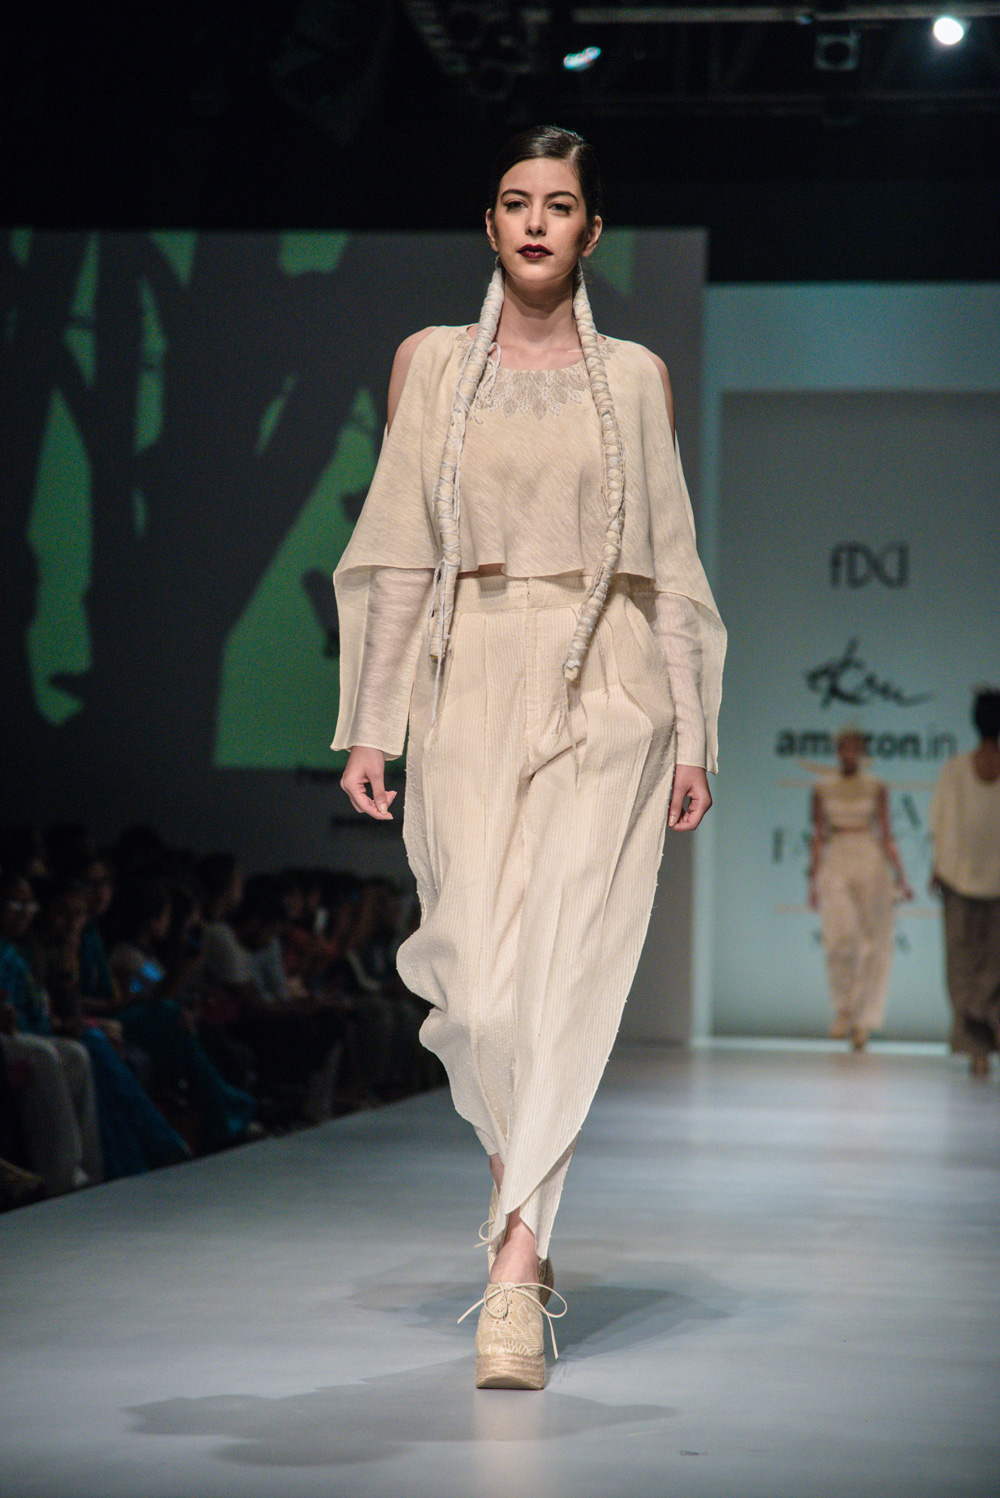 Ekru by Ektaa FDCI Amazon India Fashion Week Spring Summer 2018 Look 6